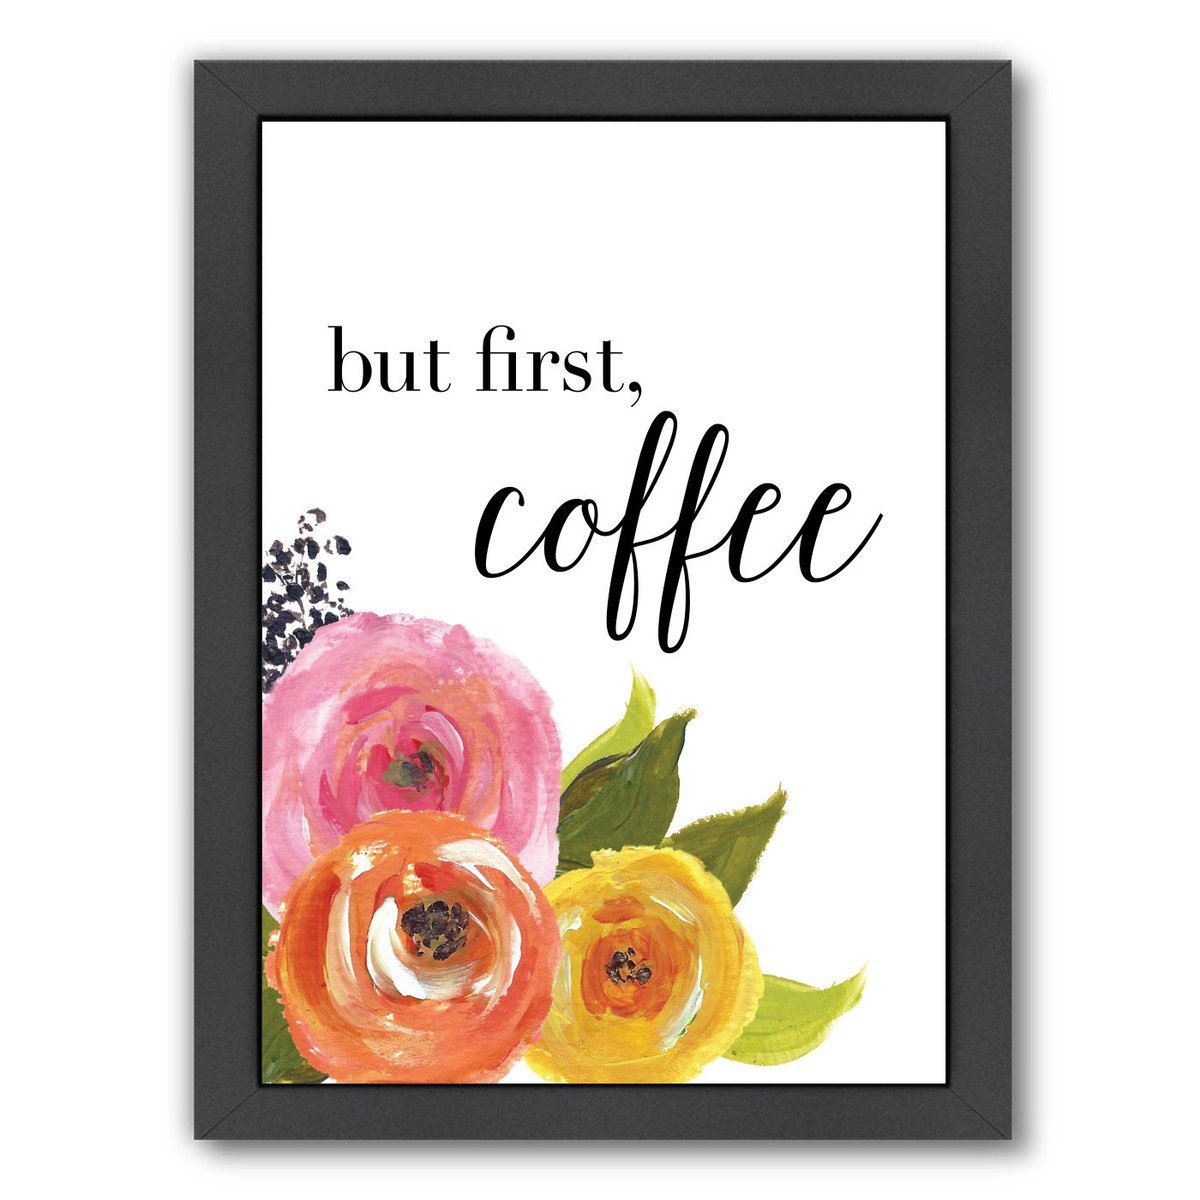 But First Coffee by Amy Brinkman Framed Print - Wall Art - Americanflat